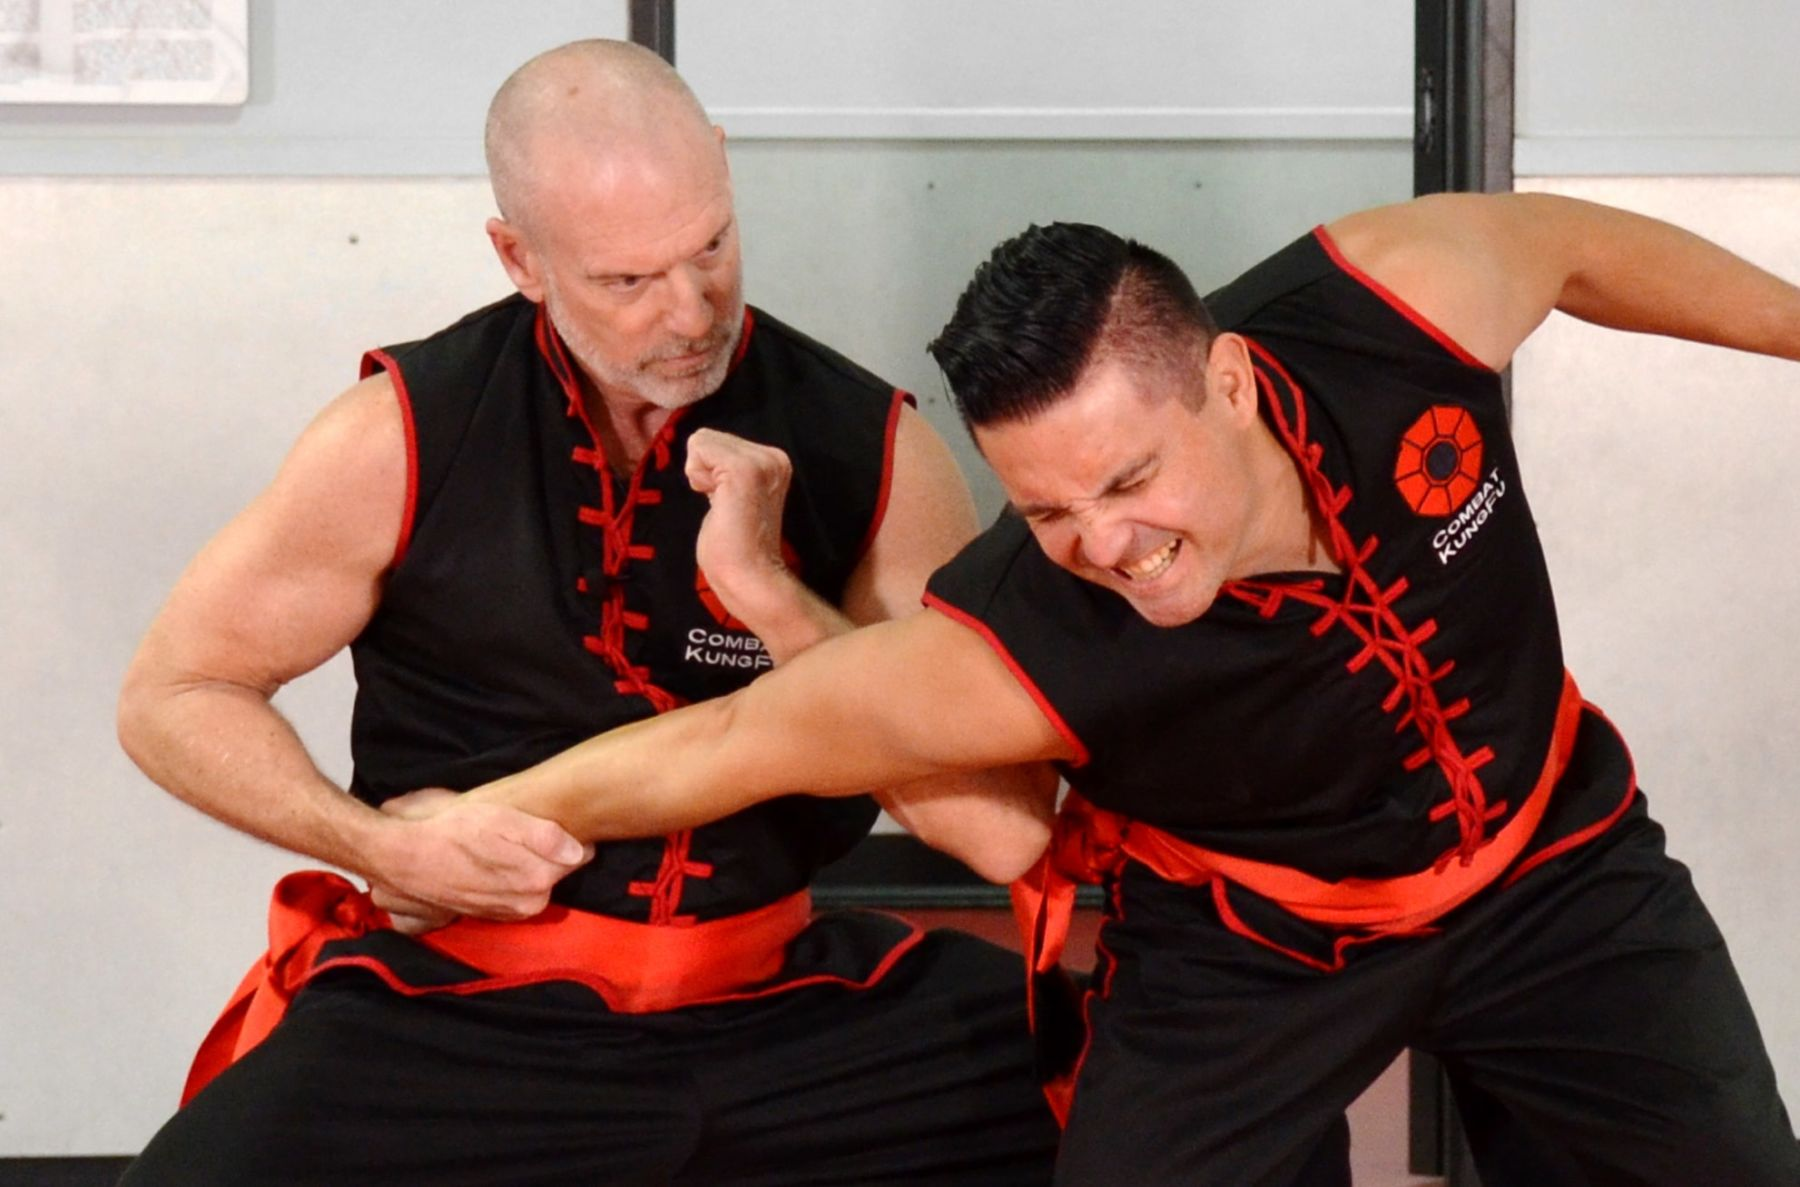 Image of Master Fisher, Founder of Combat Kung-Fu, performing an elbow dislocating technique, one of Choy Li Fut Kung-Fu's very effective close-in fighting moves.